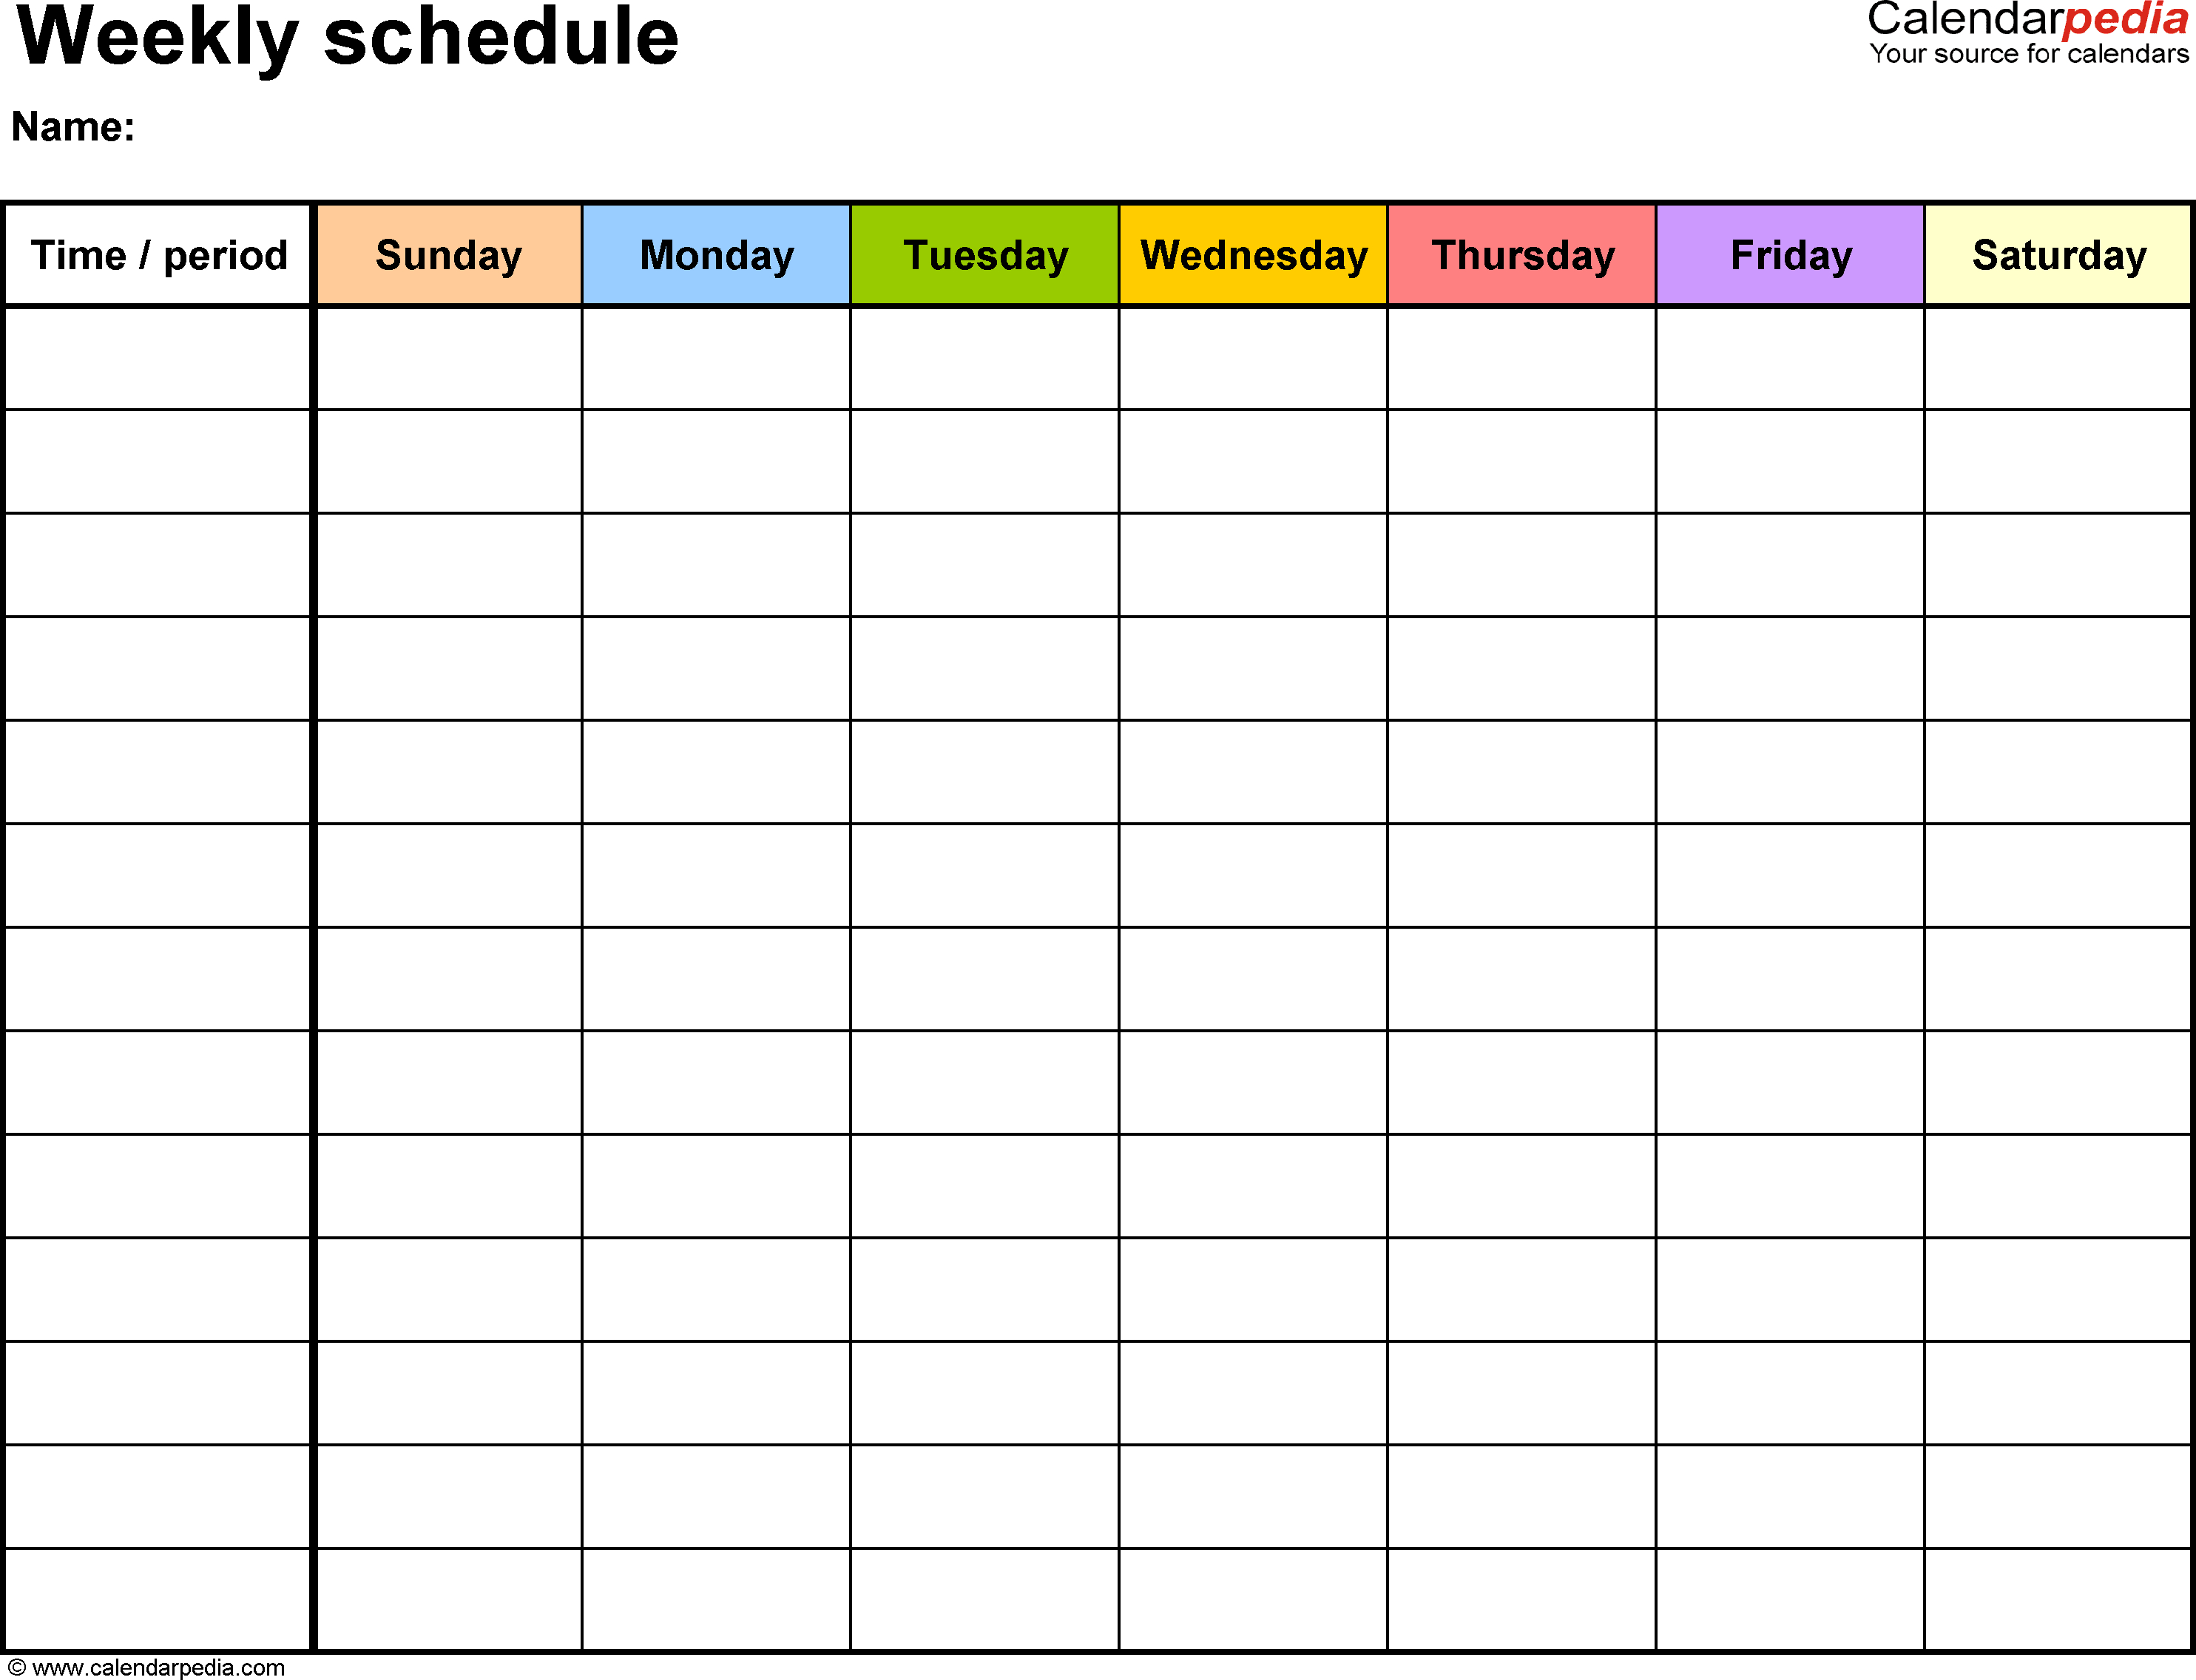 Free Weekly Schedule Templates For Excel - 18 Templates within Event Schedule Planner Template